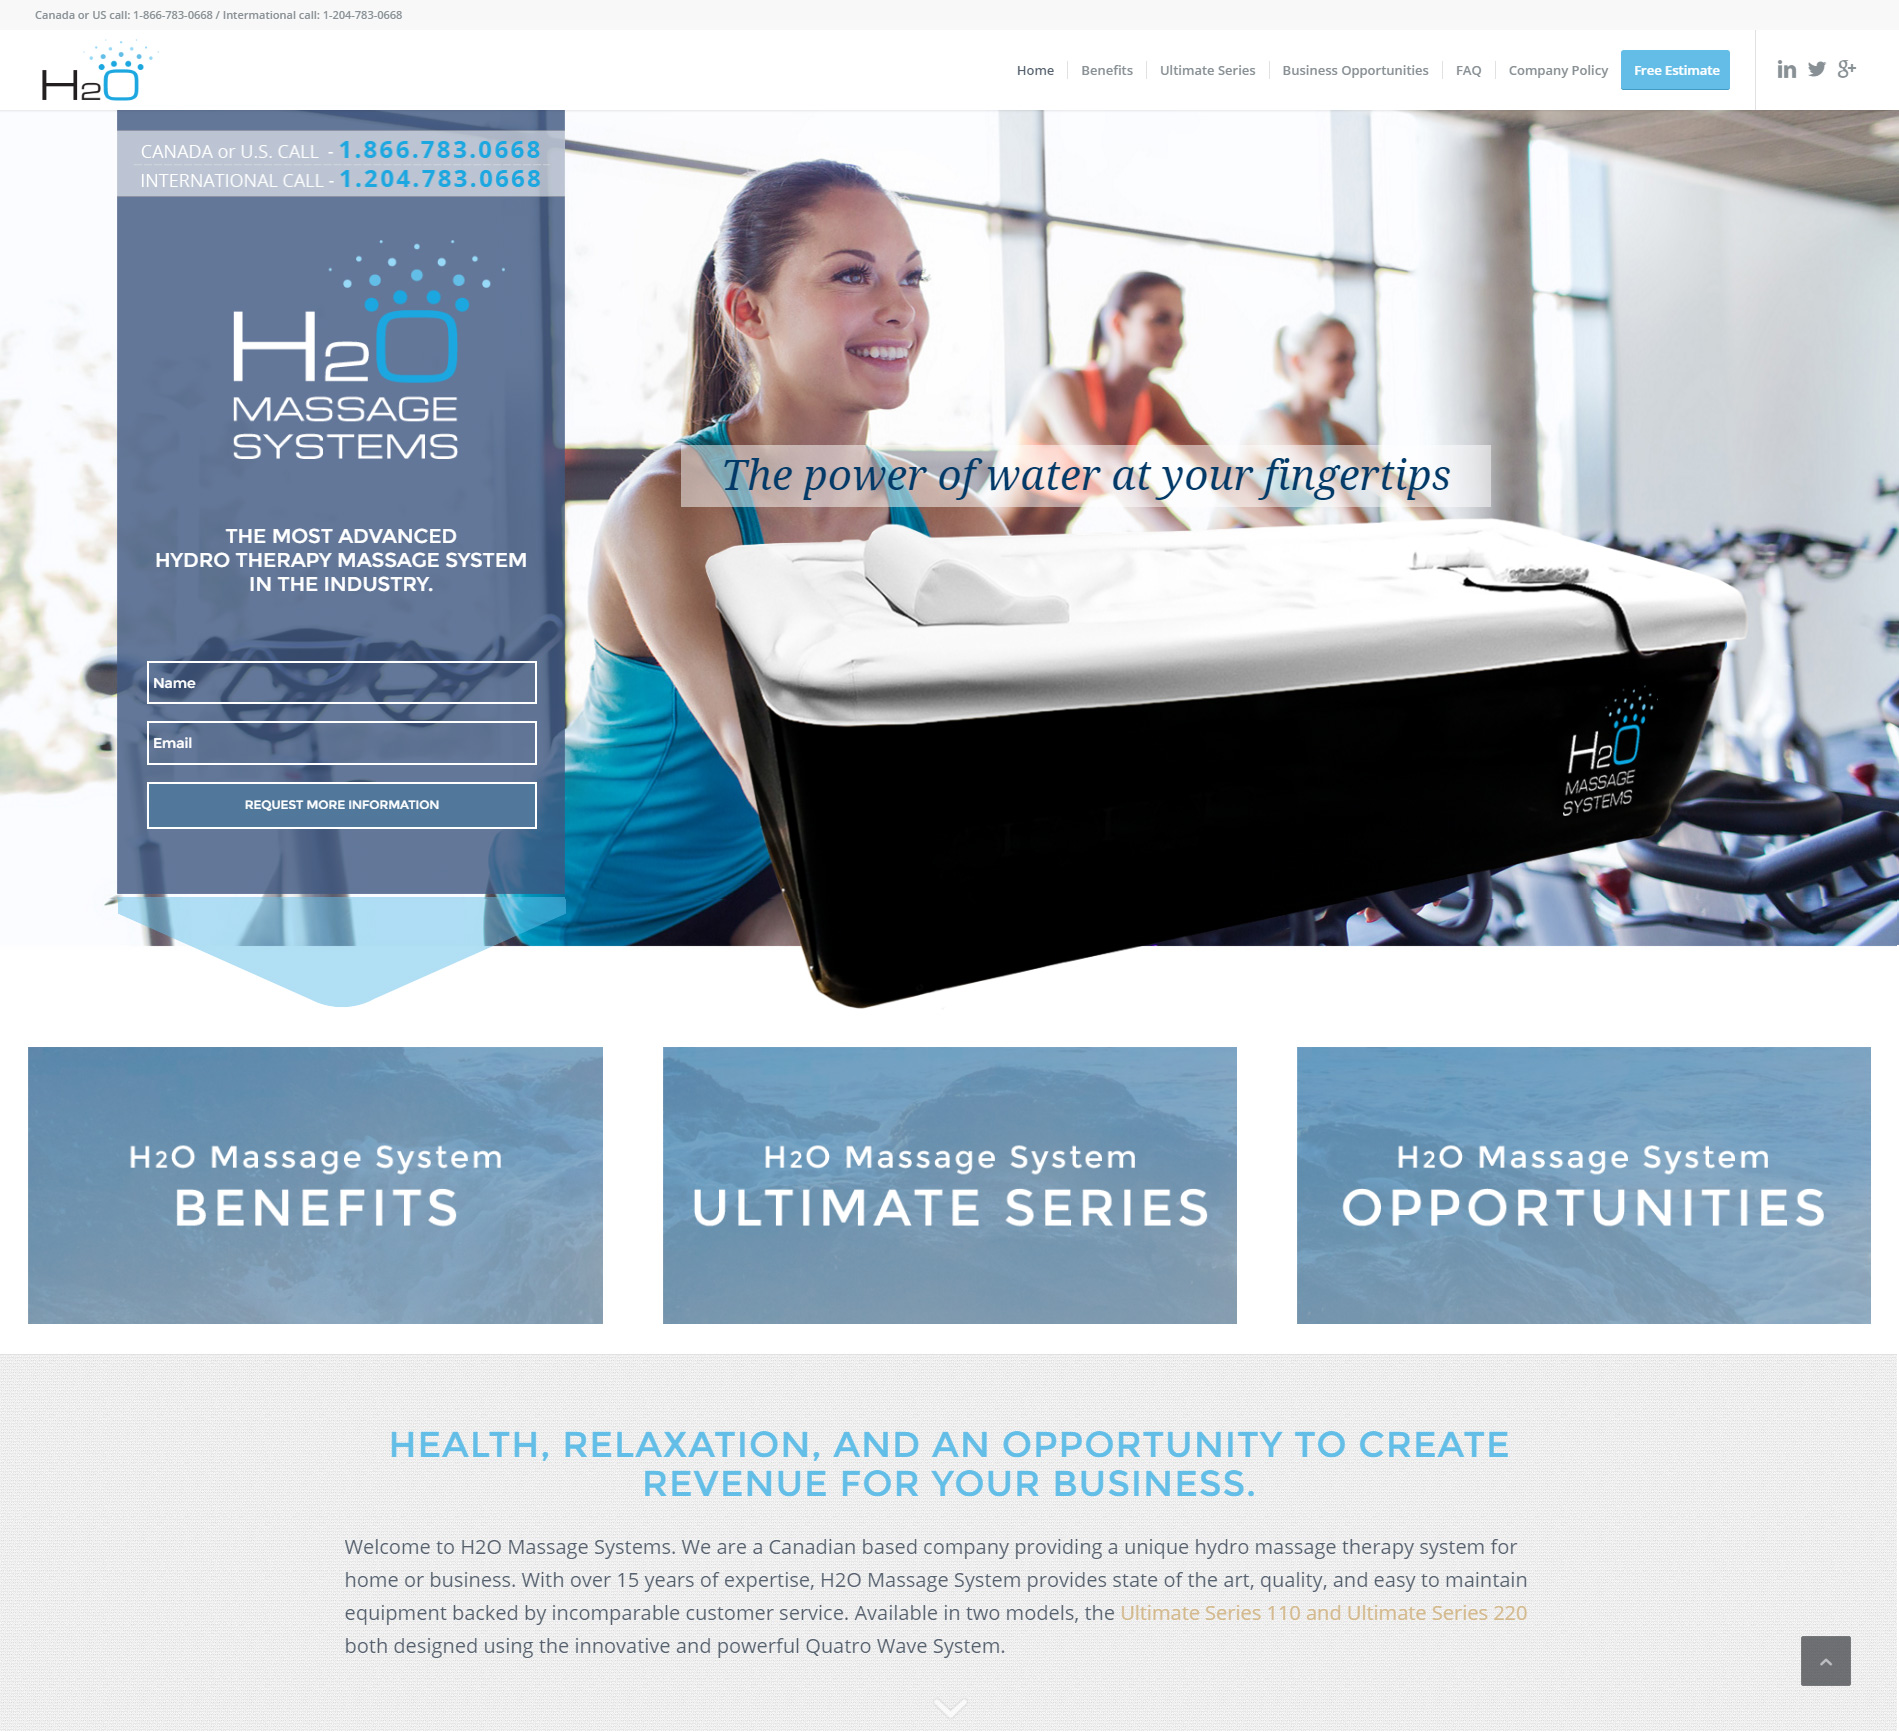 H2O Massage Systems website